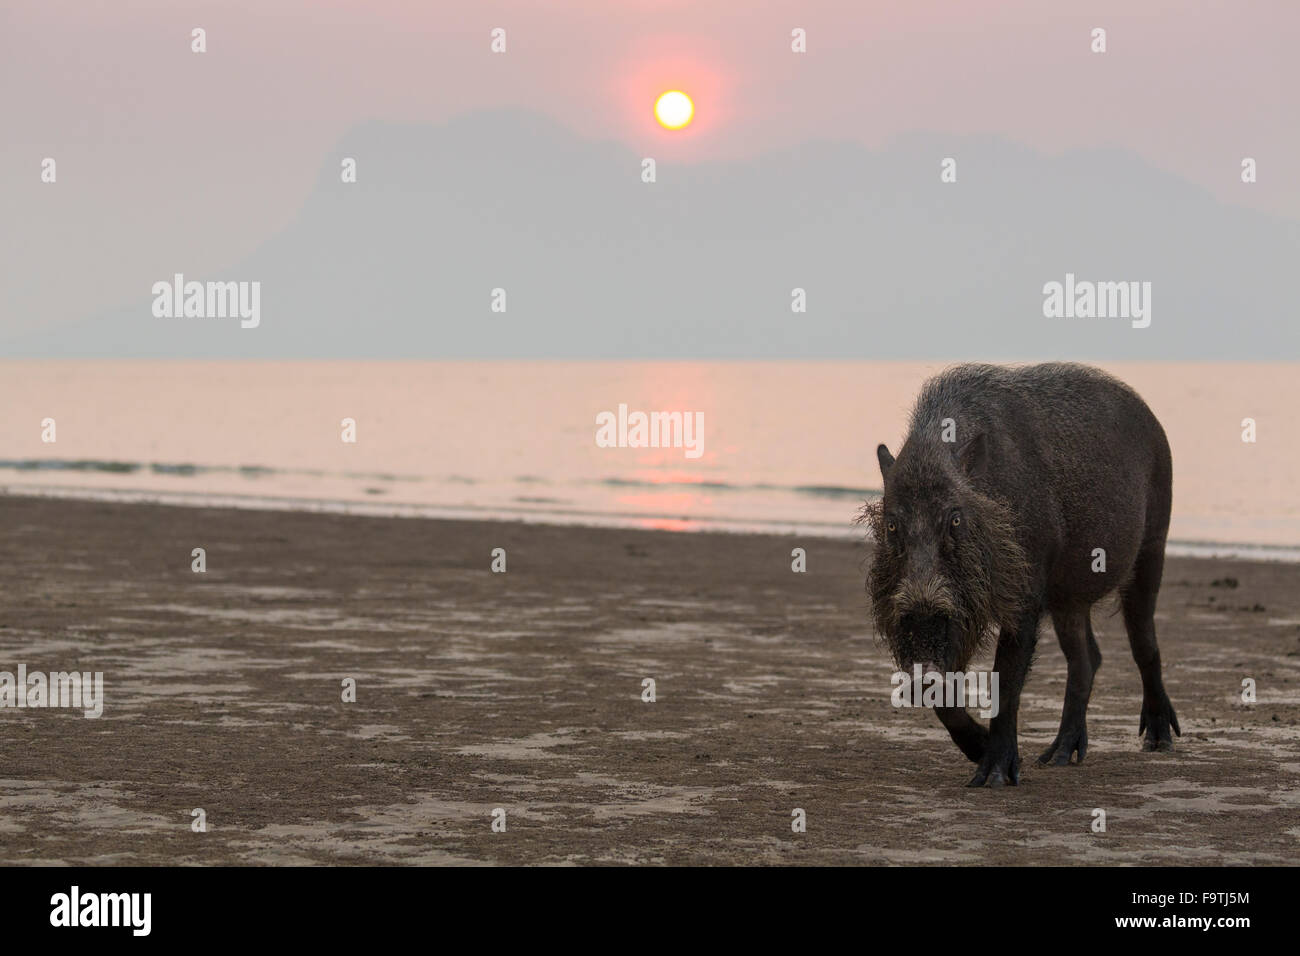 Bornean bearded pig (Sus barbatus) on a beach at sunset Stock Photo